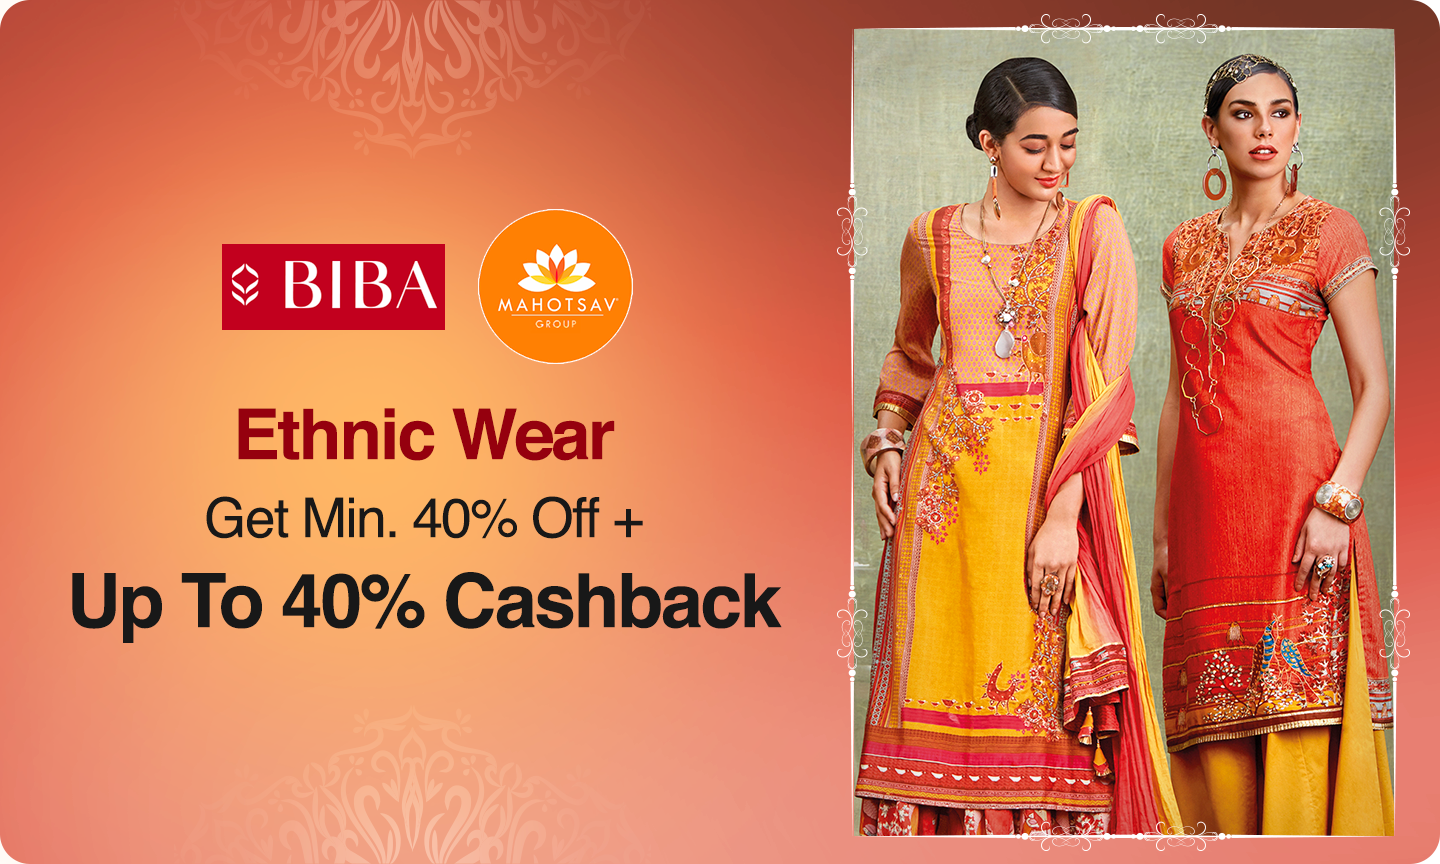 Ethnic Wear | Min 40% Off + Up To 40% Cashback